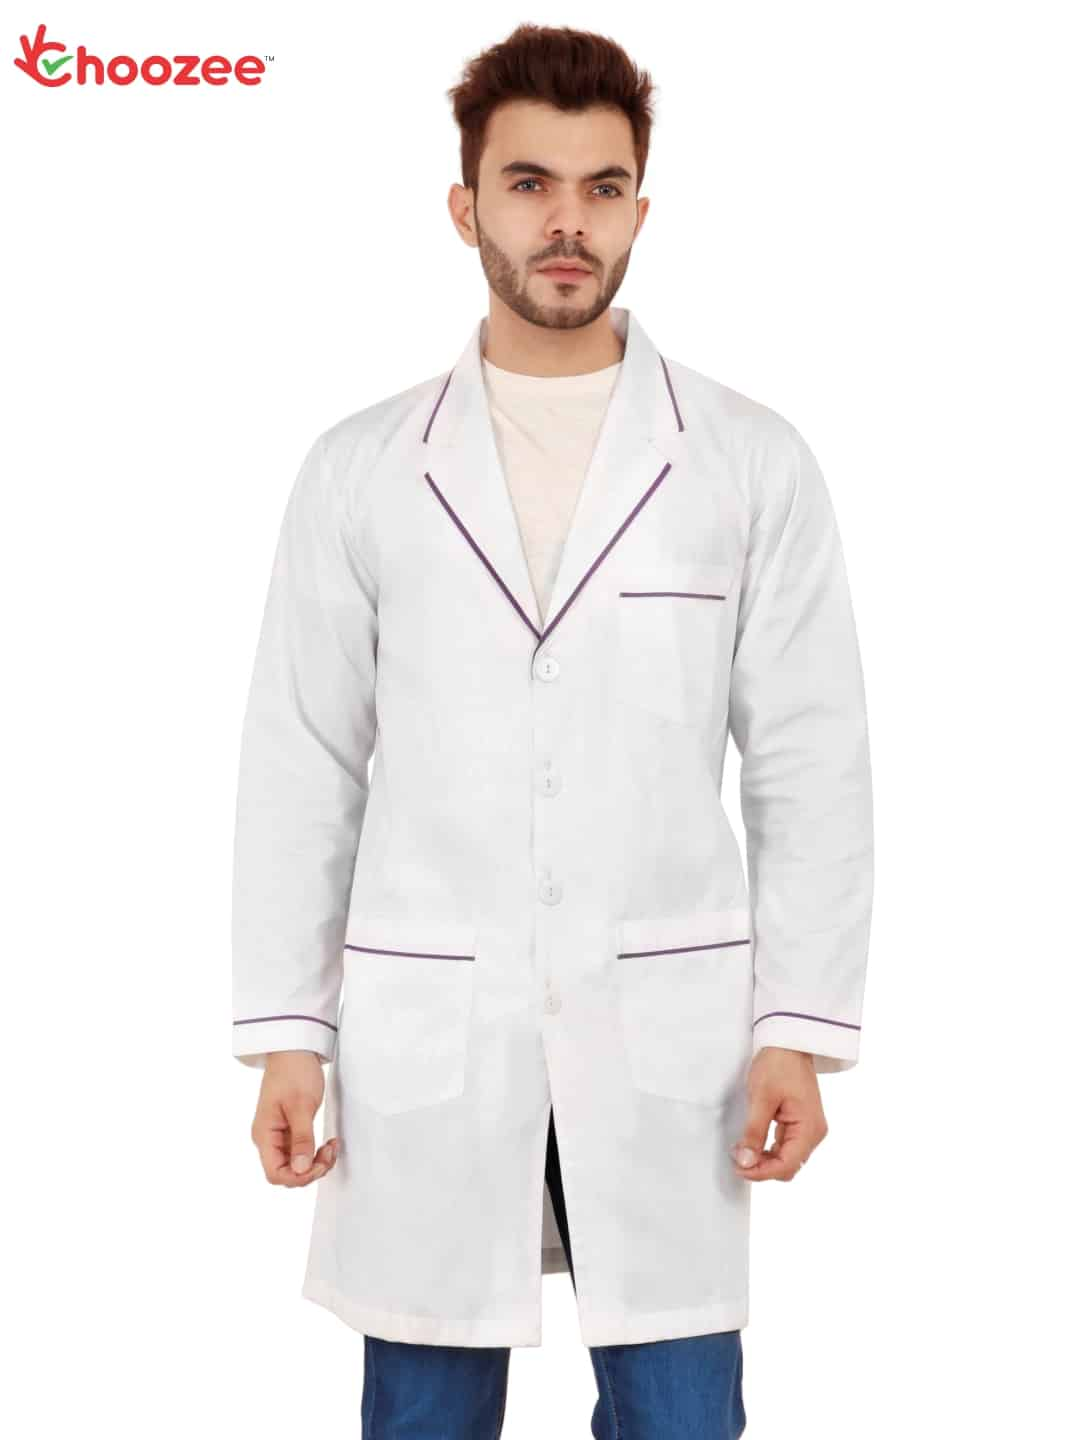 White Doctor Coat with Lining